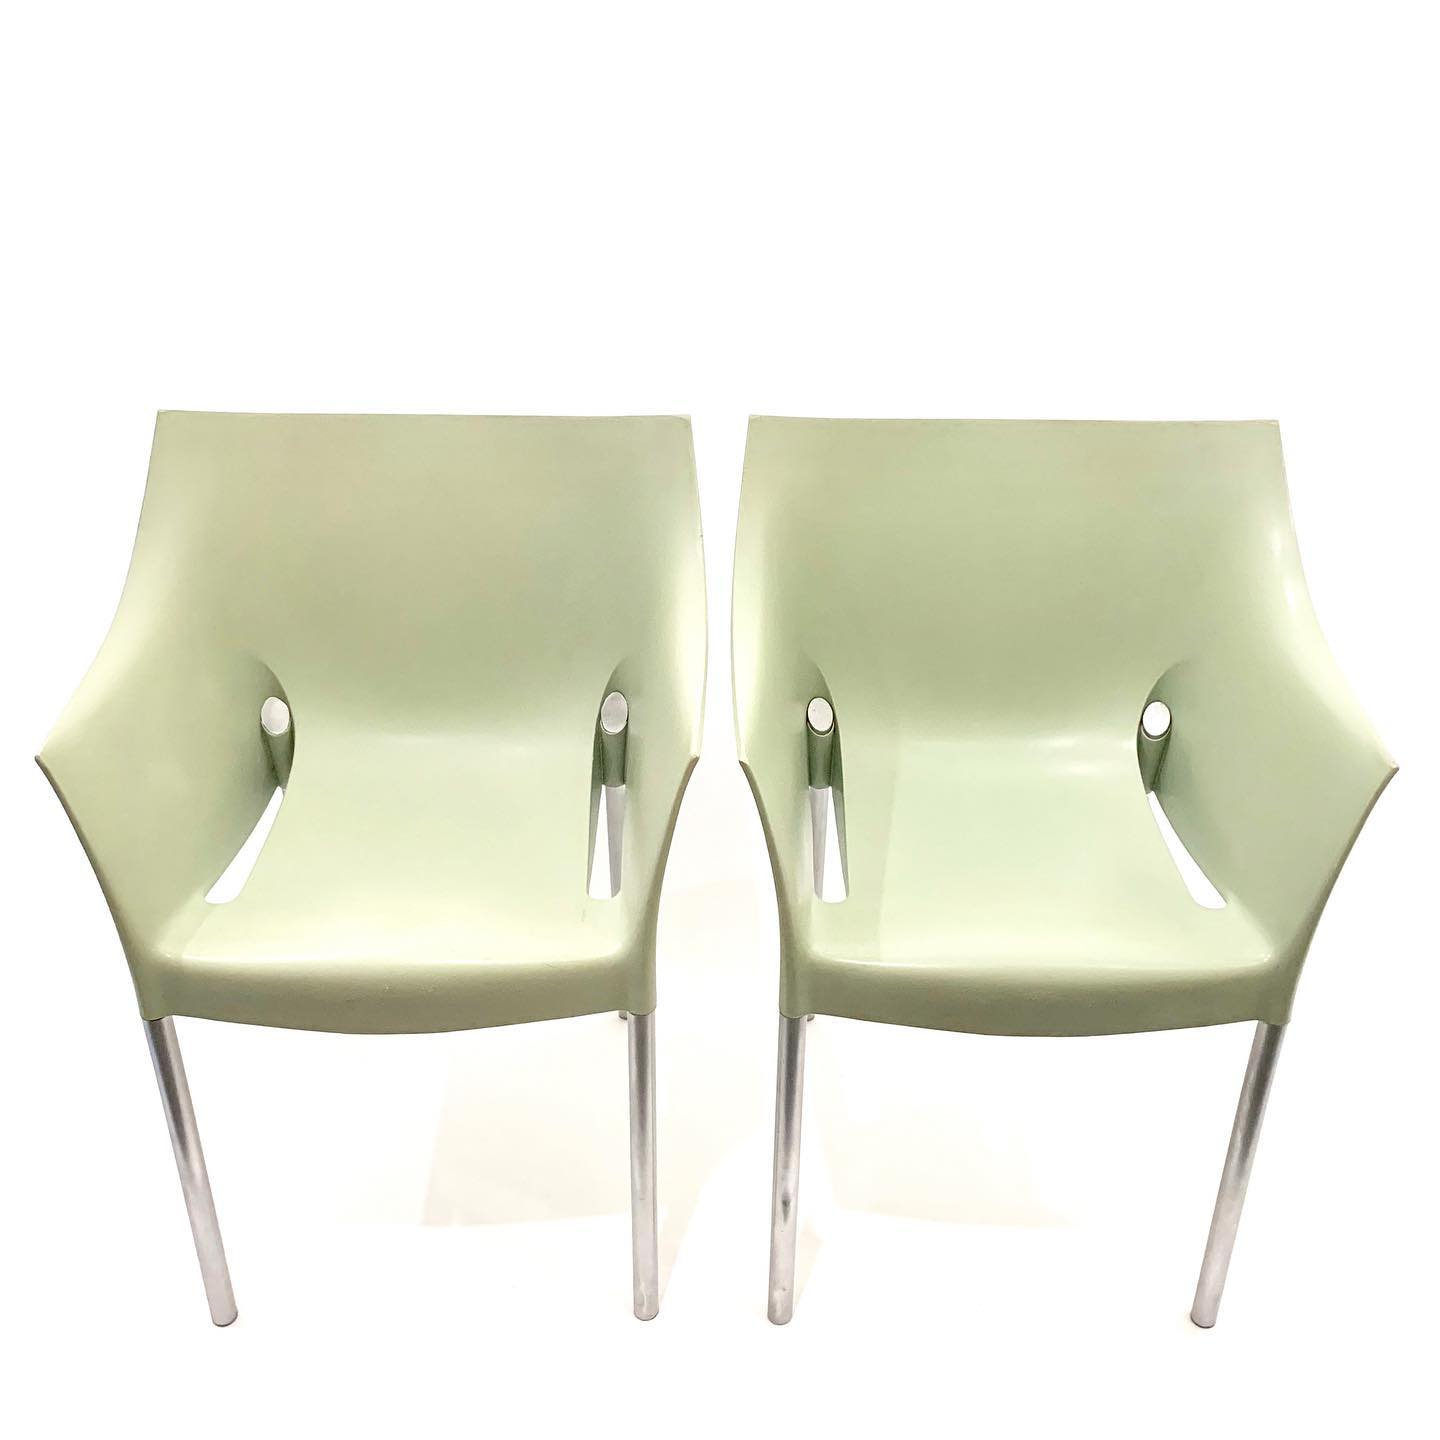 Pair of fennel green armchairs, Dr. No by Philippe Starck for Kartell, $150/pair